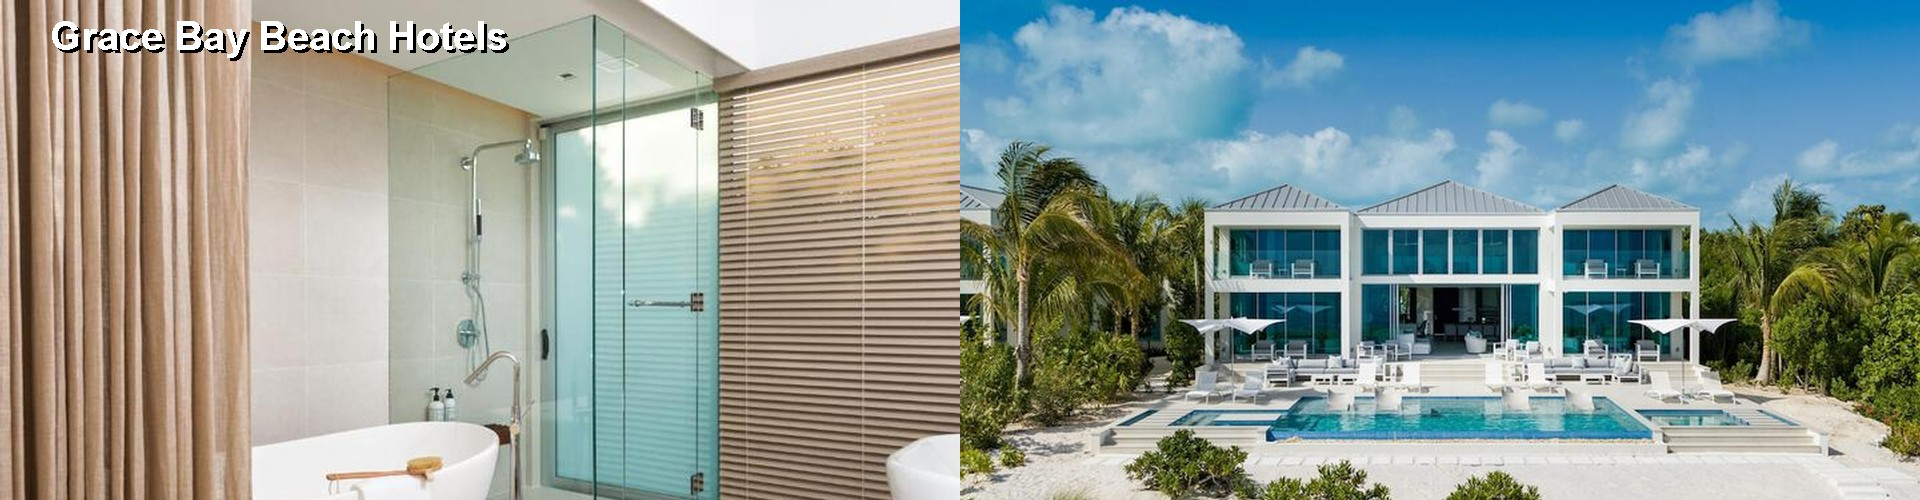 5 Best Hotels near Grace Bay Beach